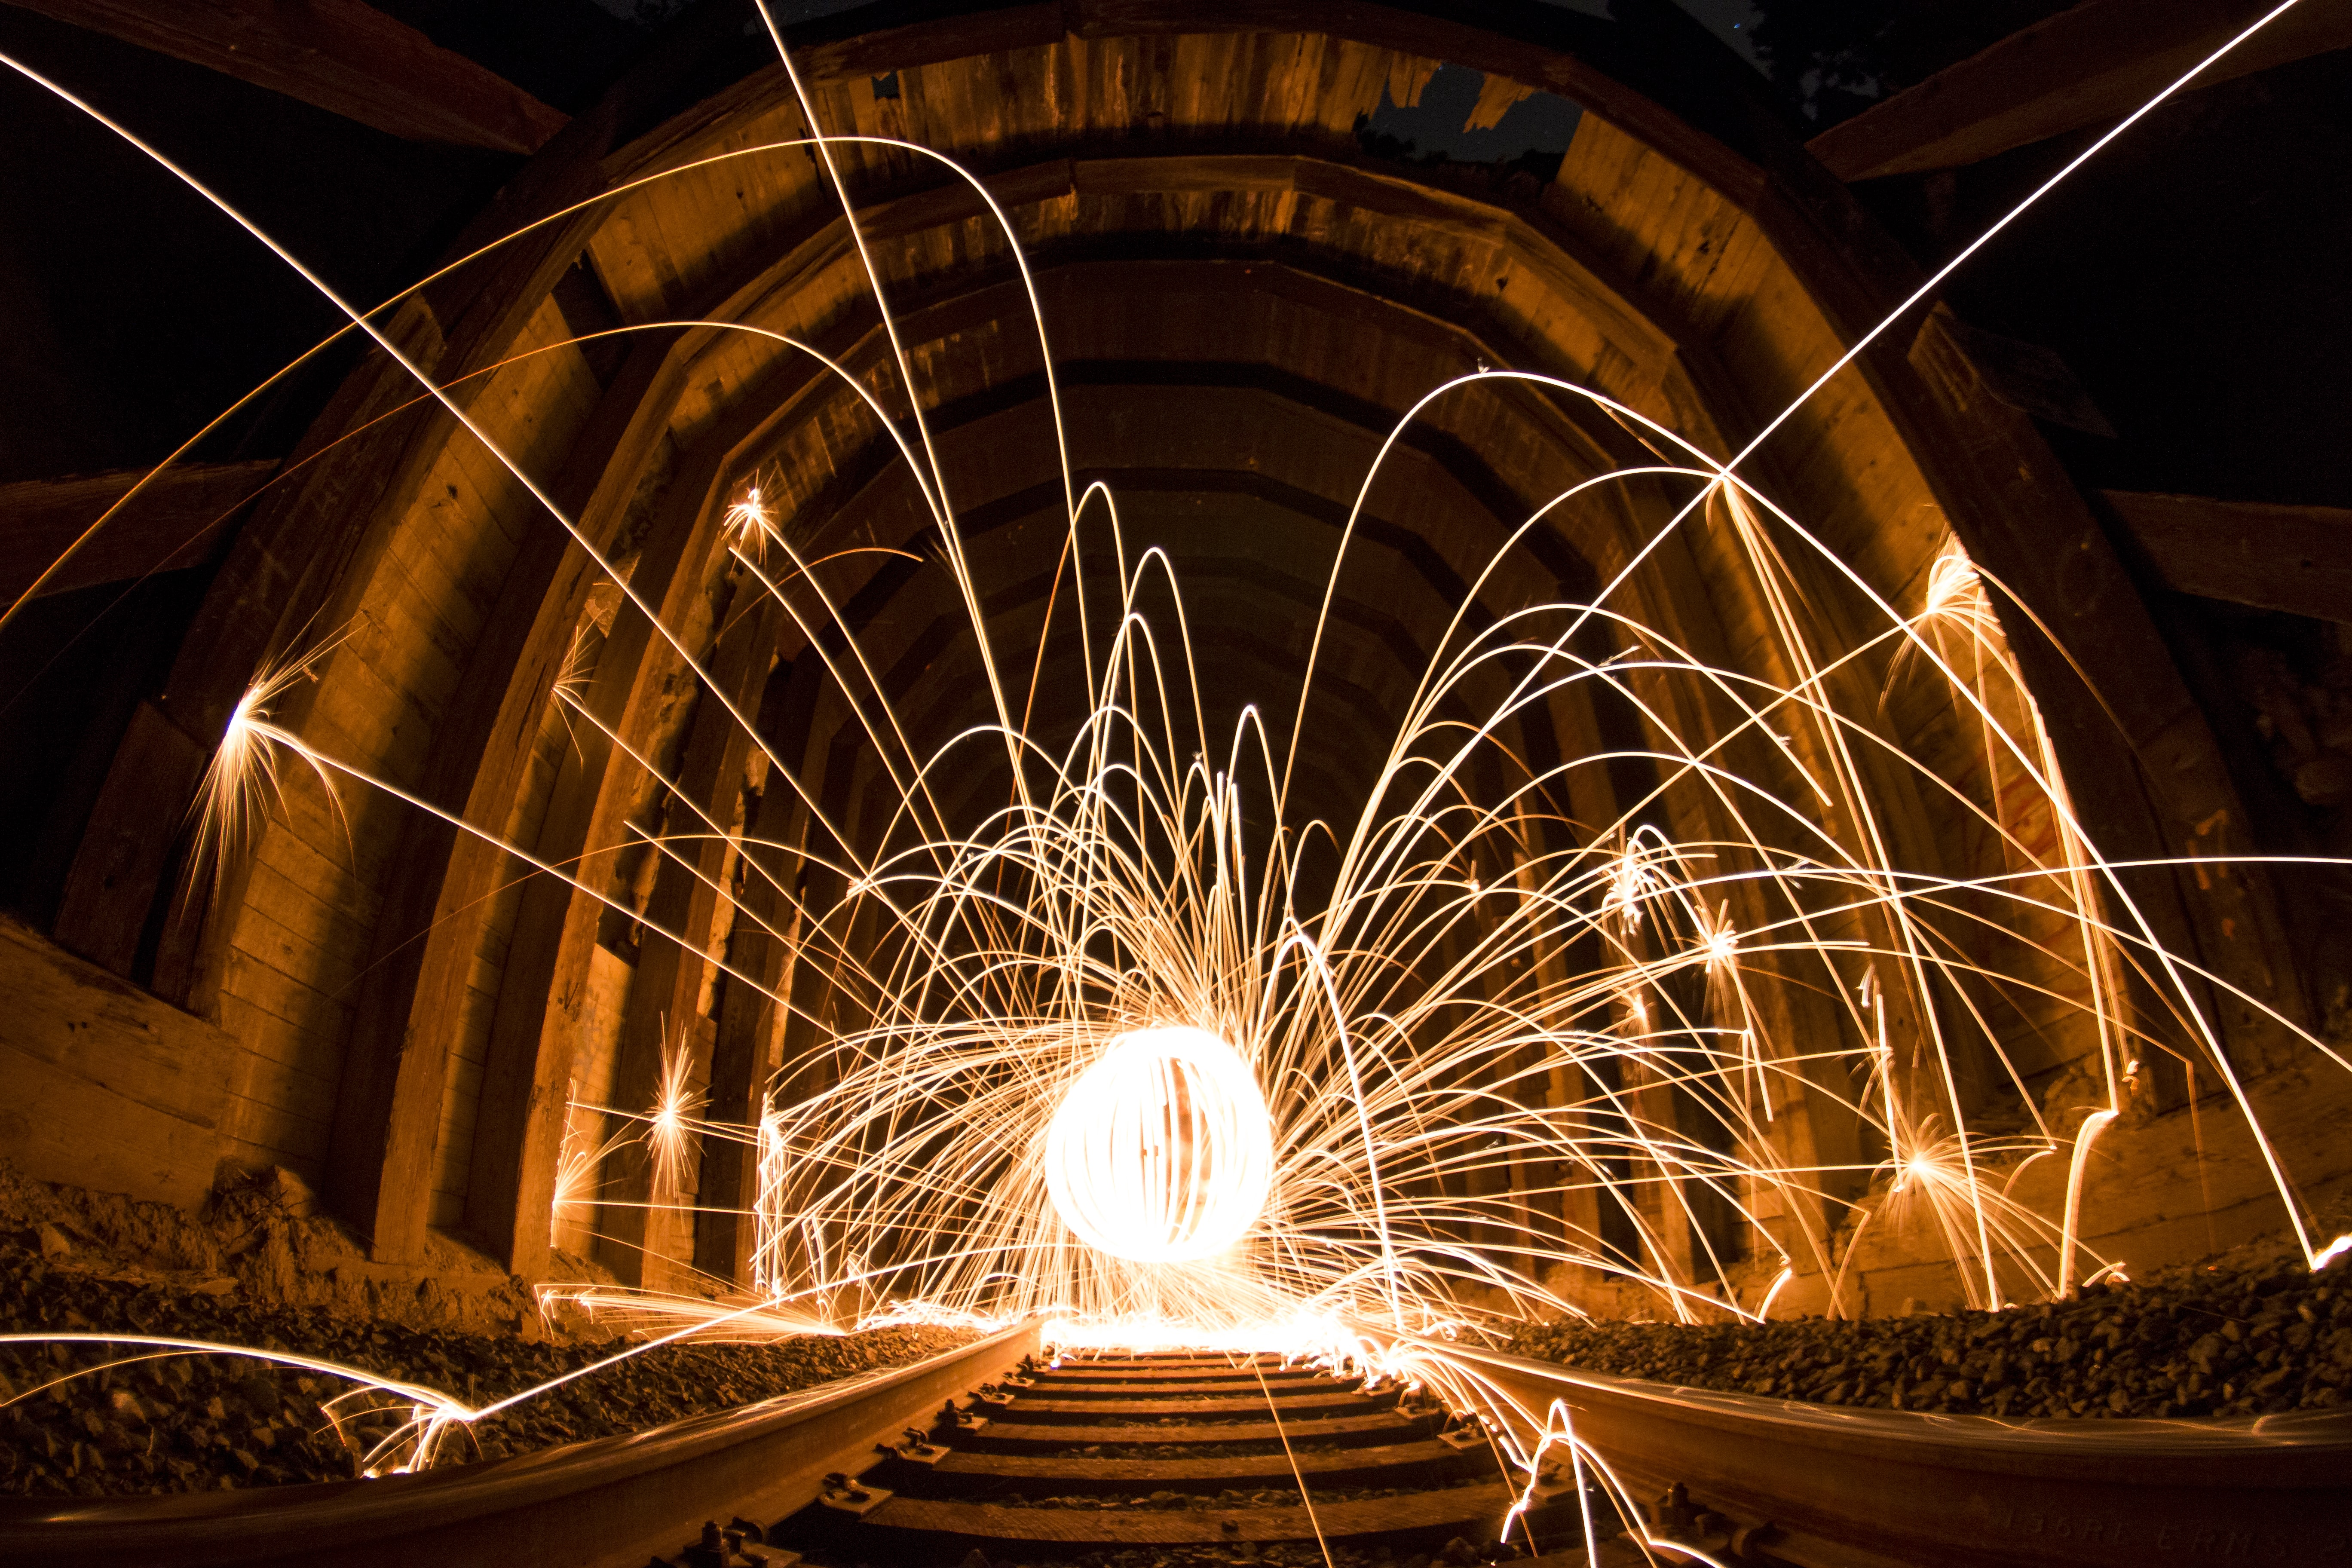 A long exposure shot of steel wool light trails in an Ironwood train tunnel